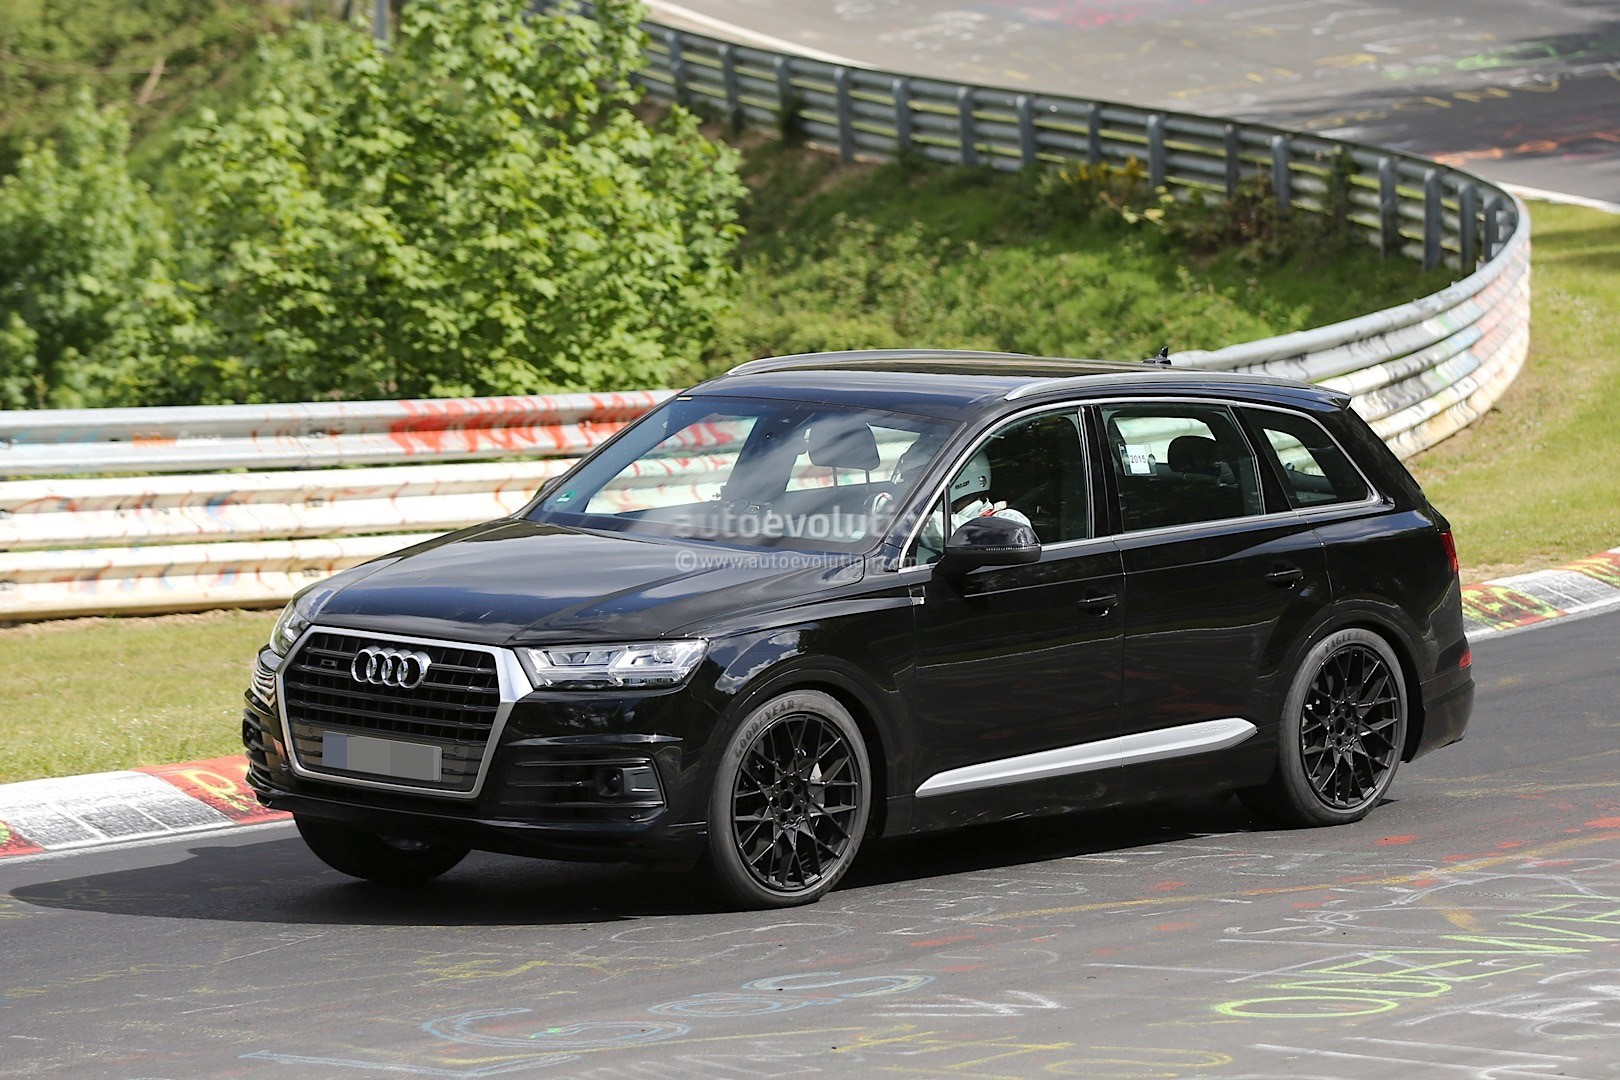 2016 Audi Sq7 Spied Inside And Out Shows Off On The Test